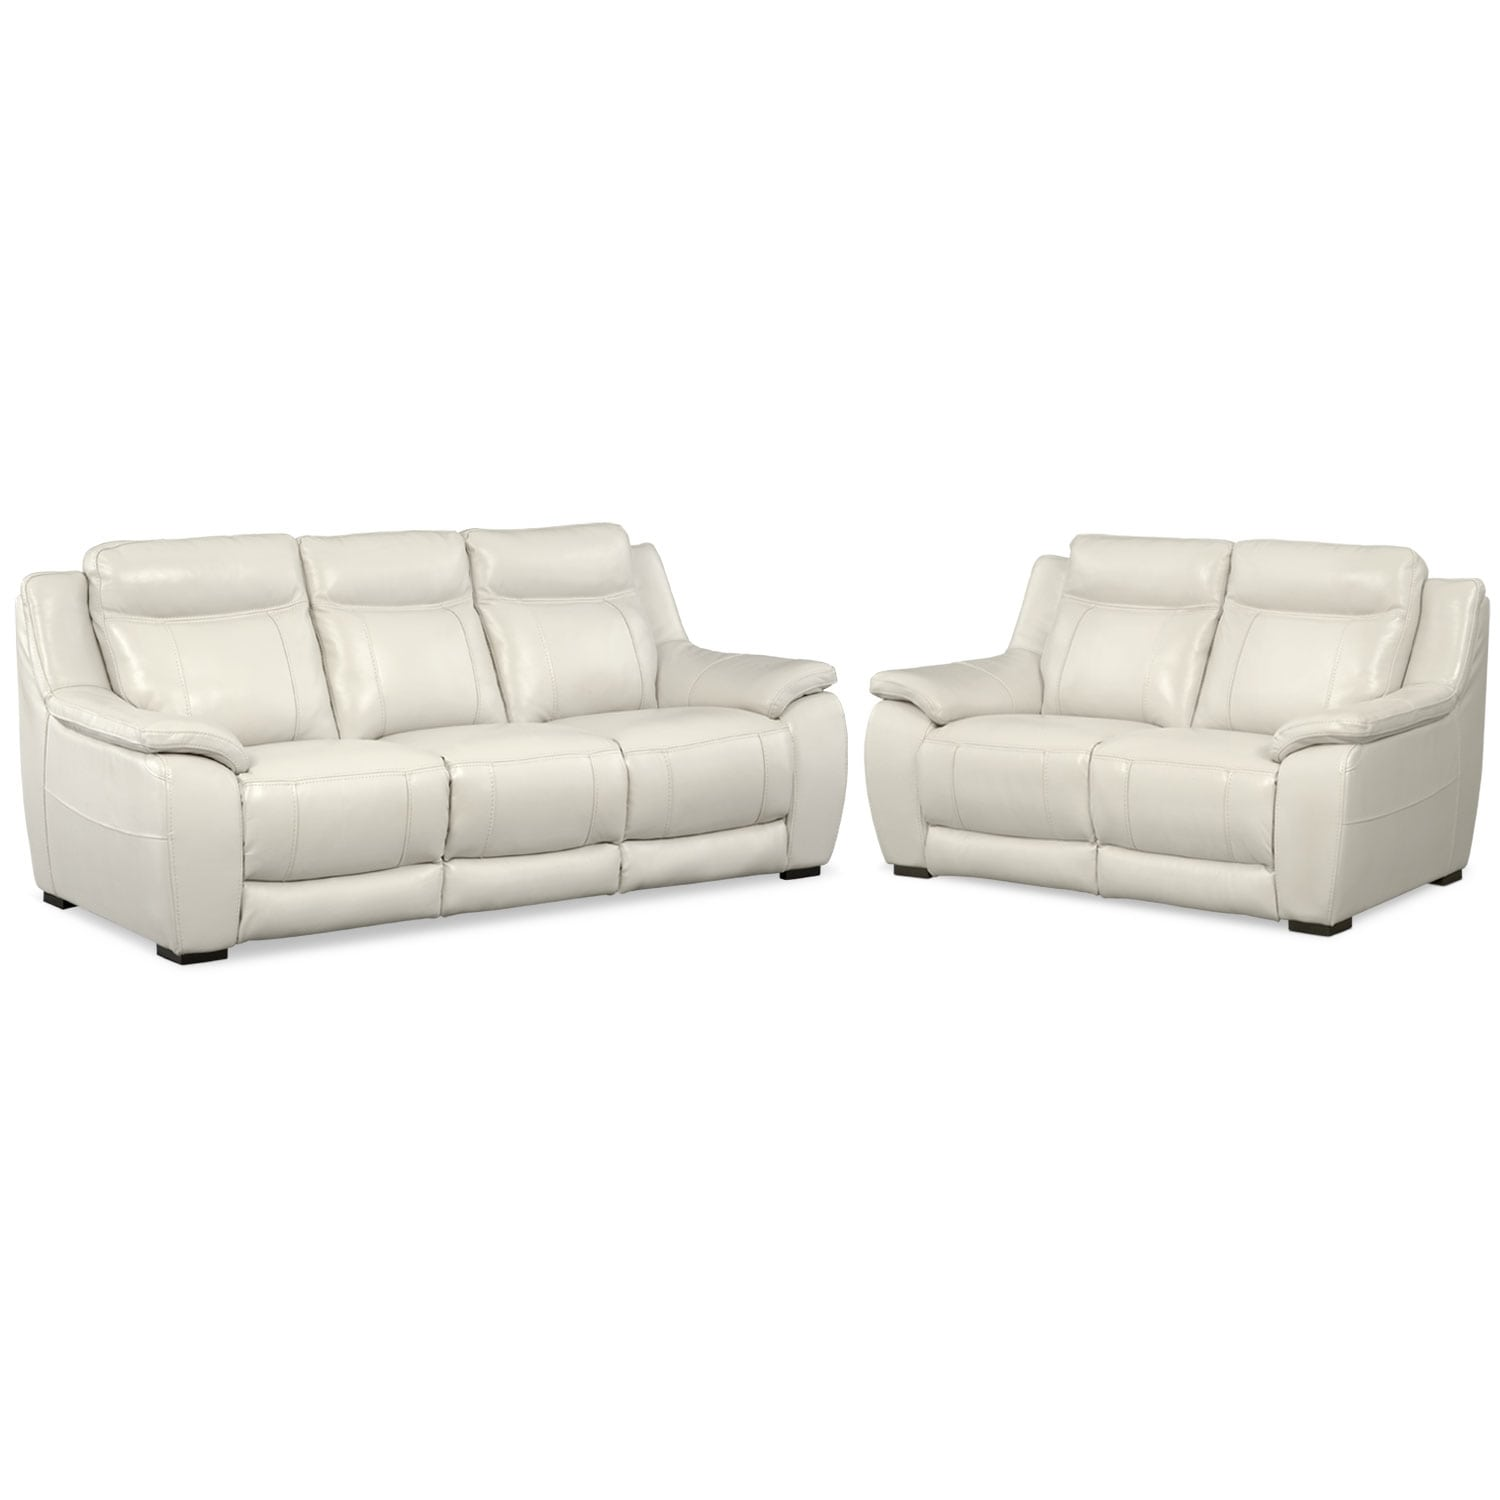 Lido Sofa and Loveseat Set - Ivory